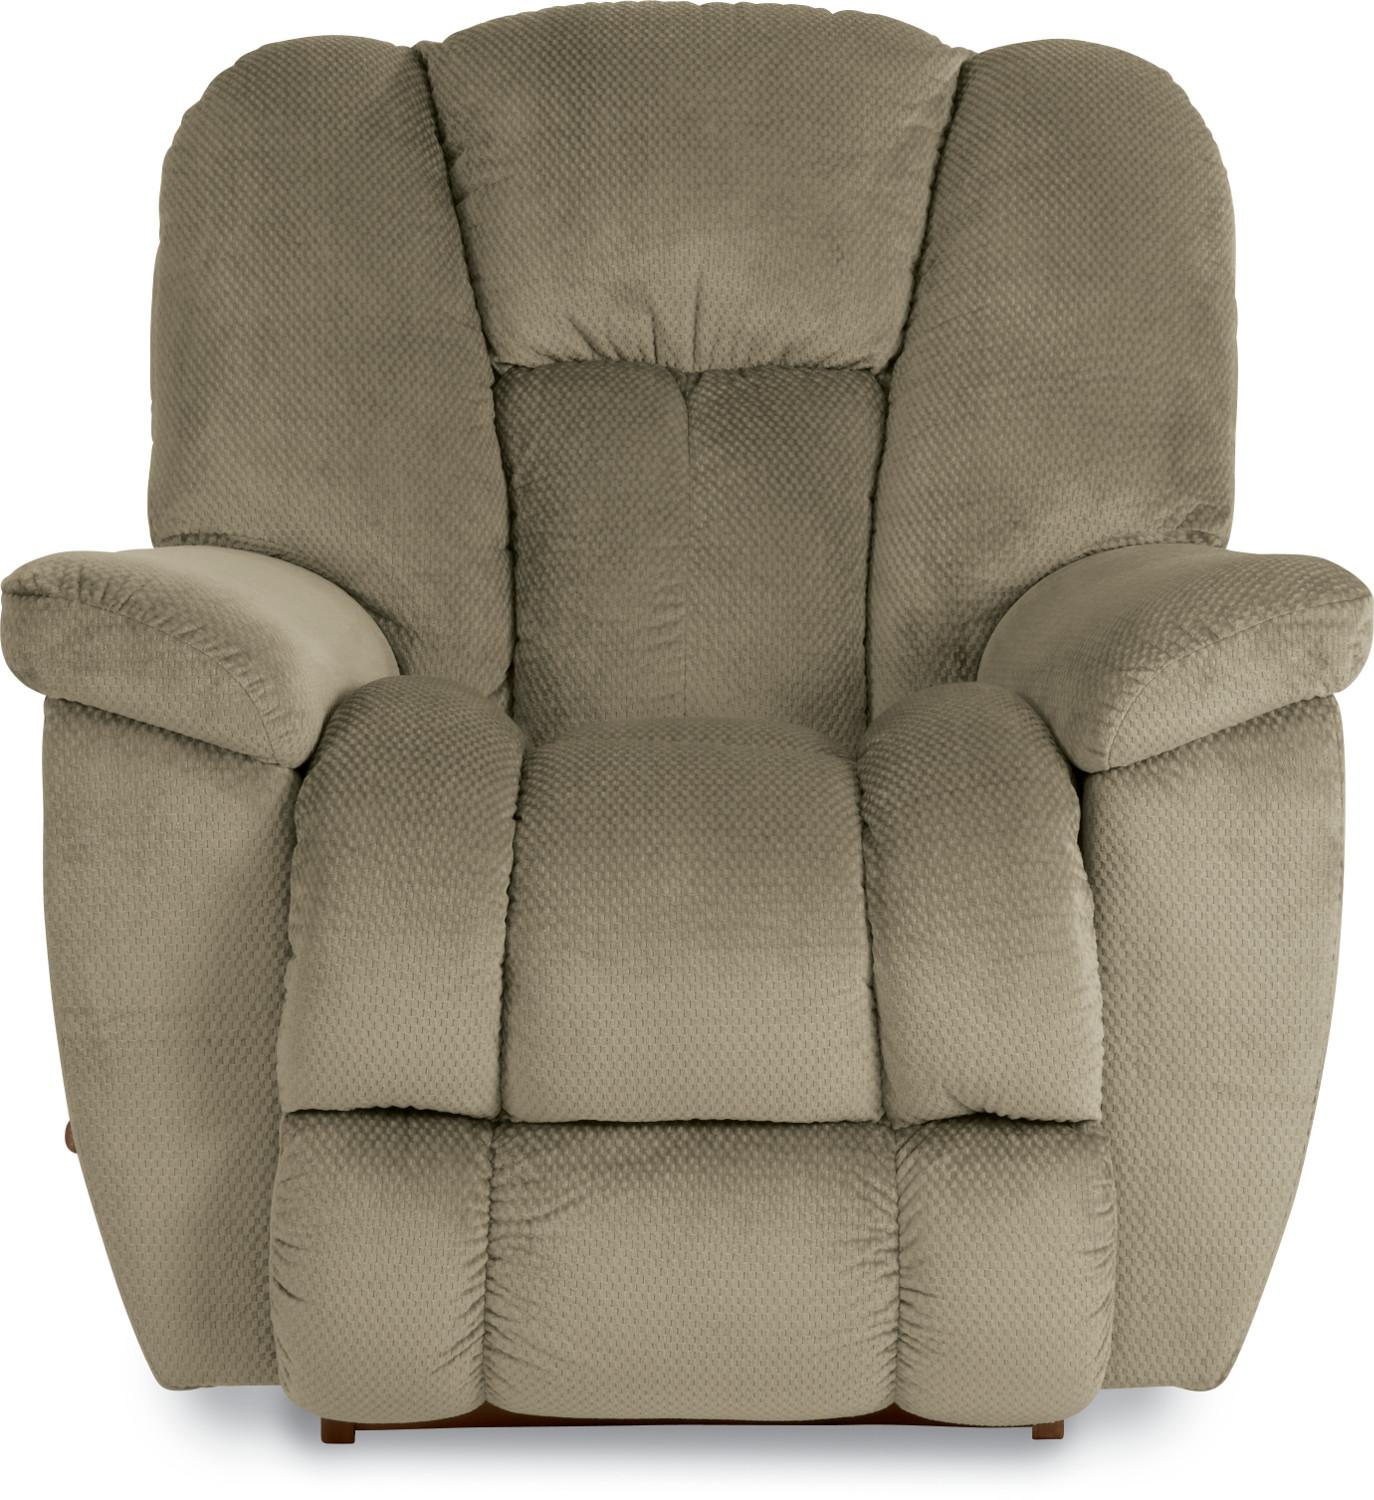 Maverick Reclina-Way Recliner by La-Z-Boy at Coconis Furniture & Mattress 1st